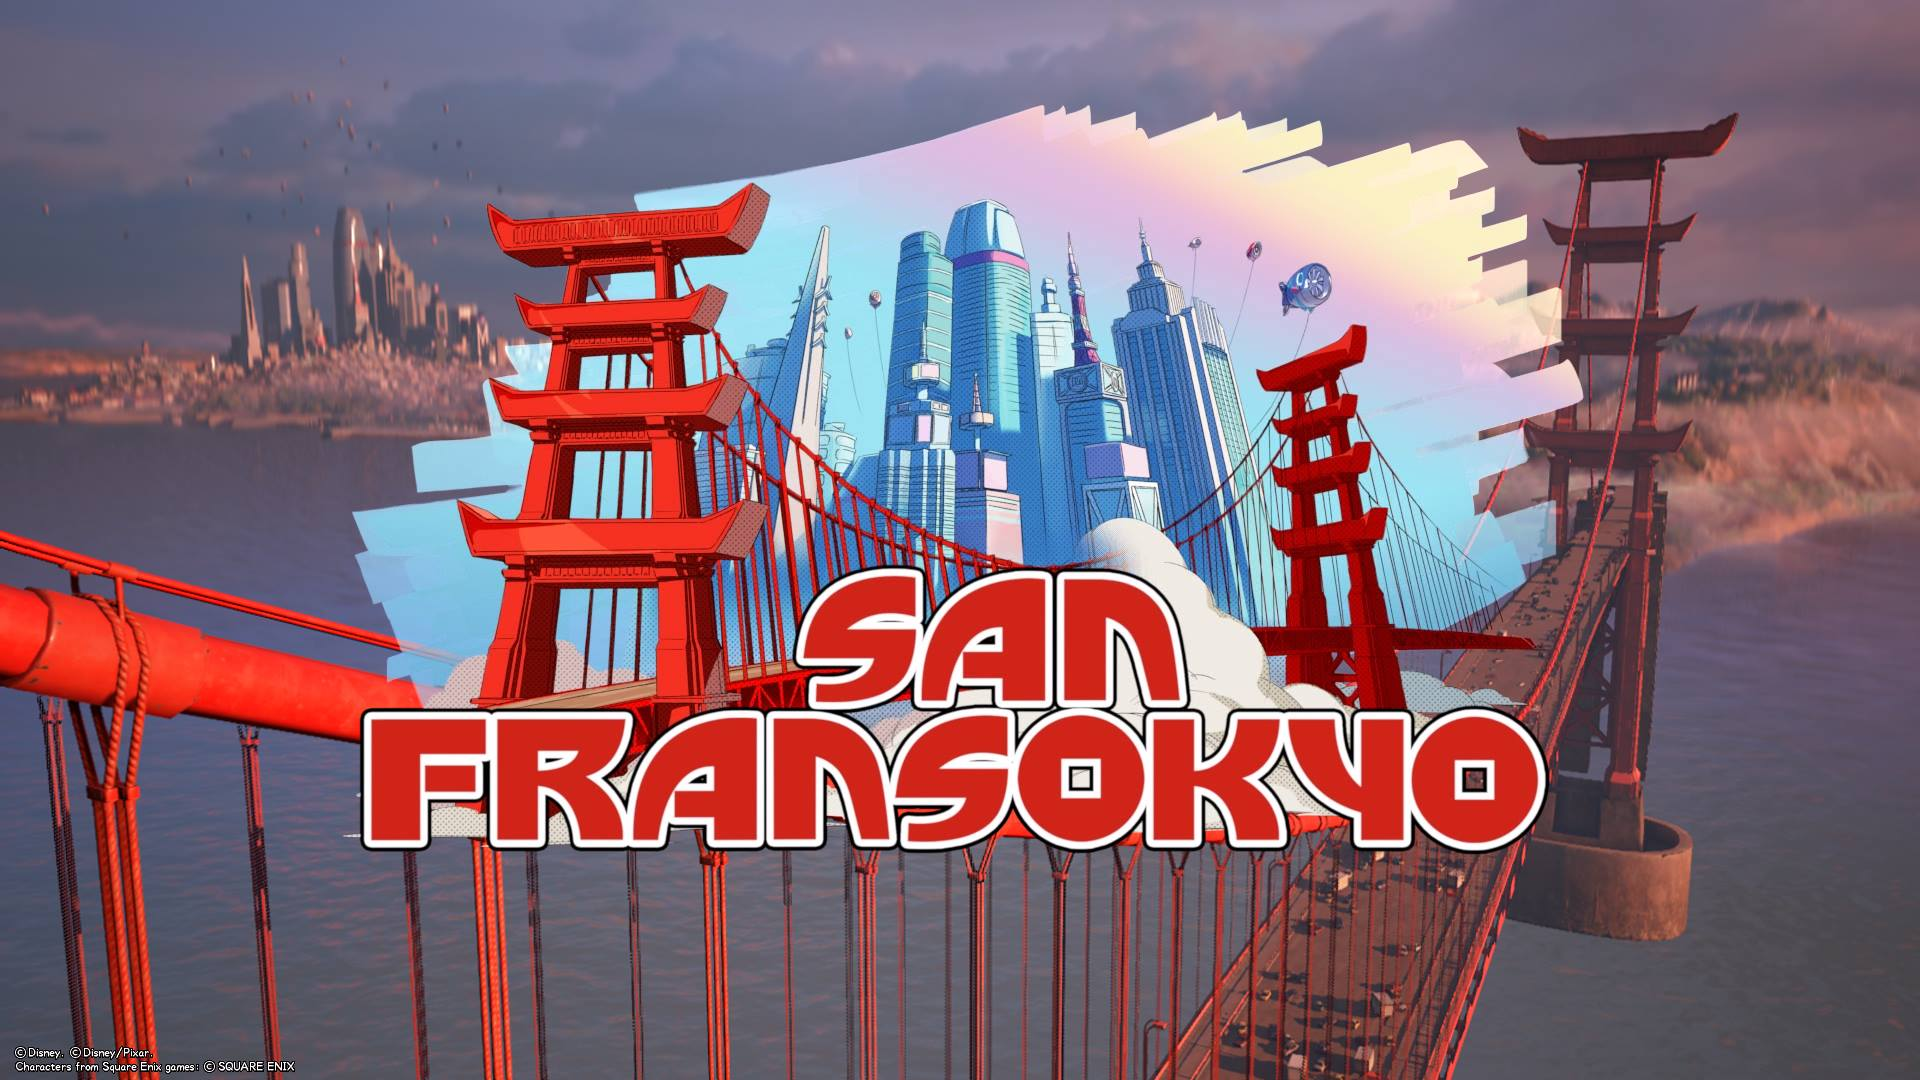 The 8th world that unlocks in Kingdom Hearts 3 is San Fransokyo.